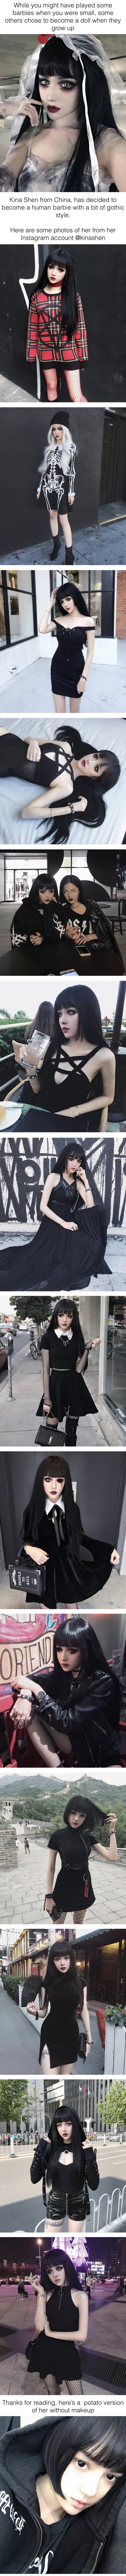 Meet The Human Gothic Barbie From China